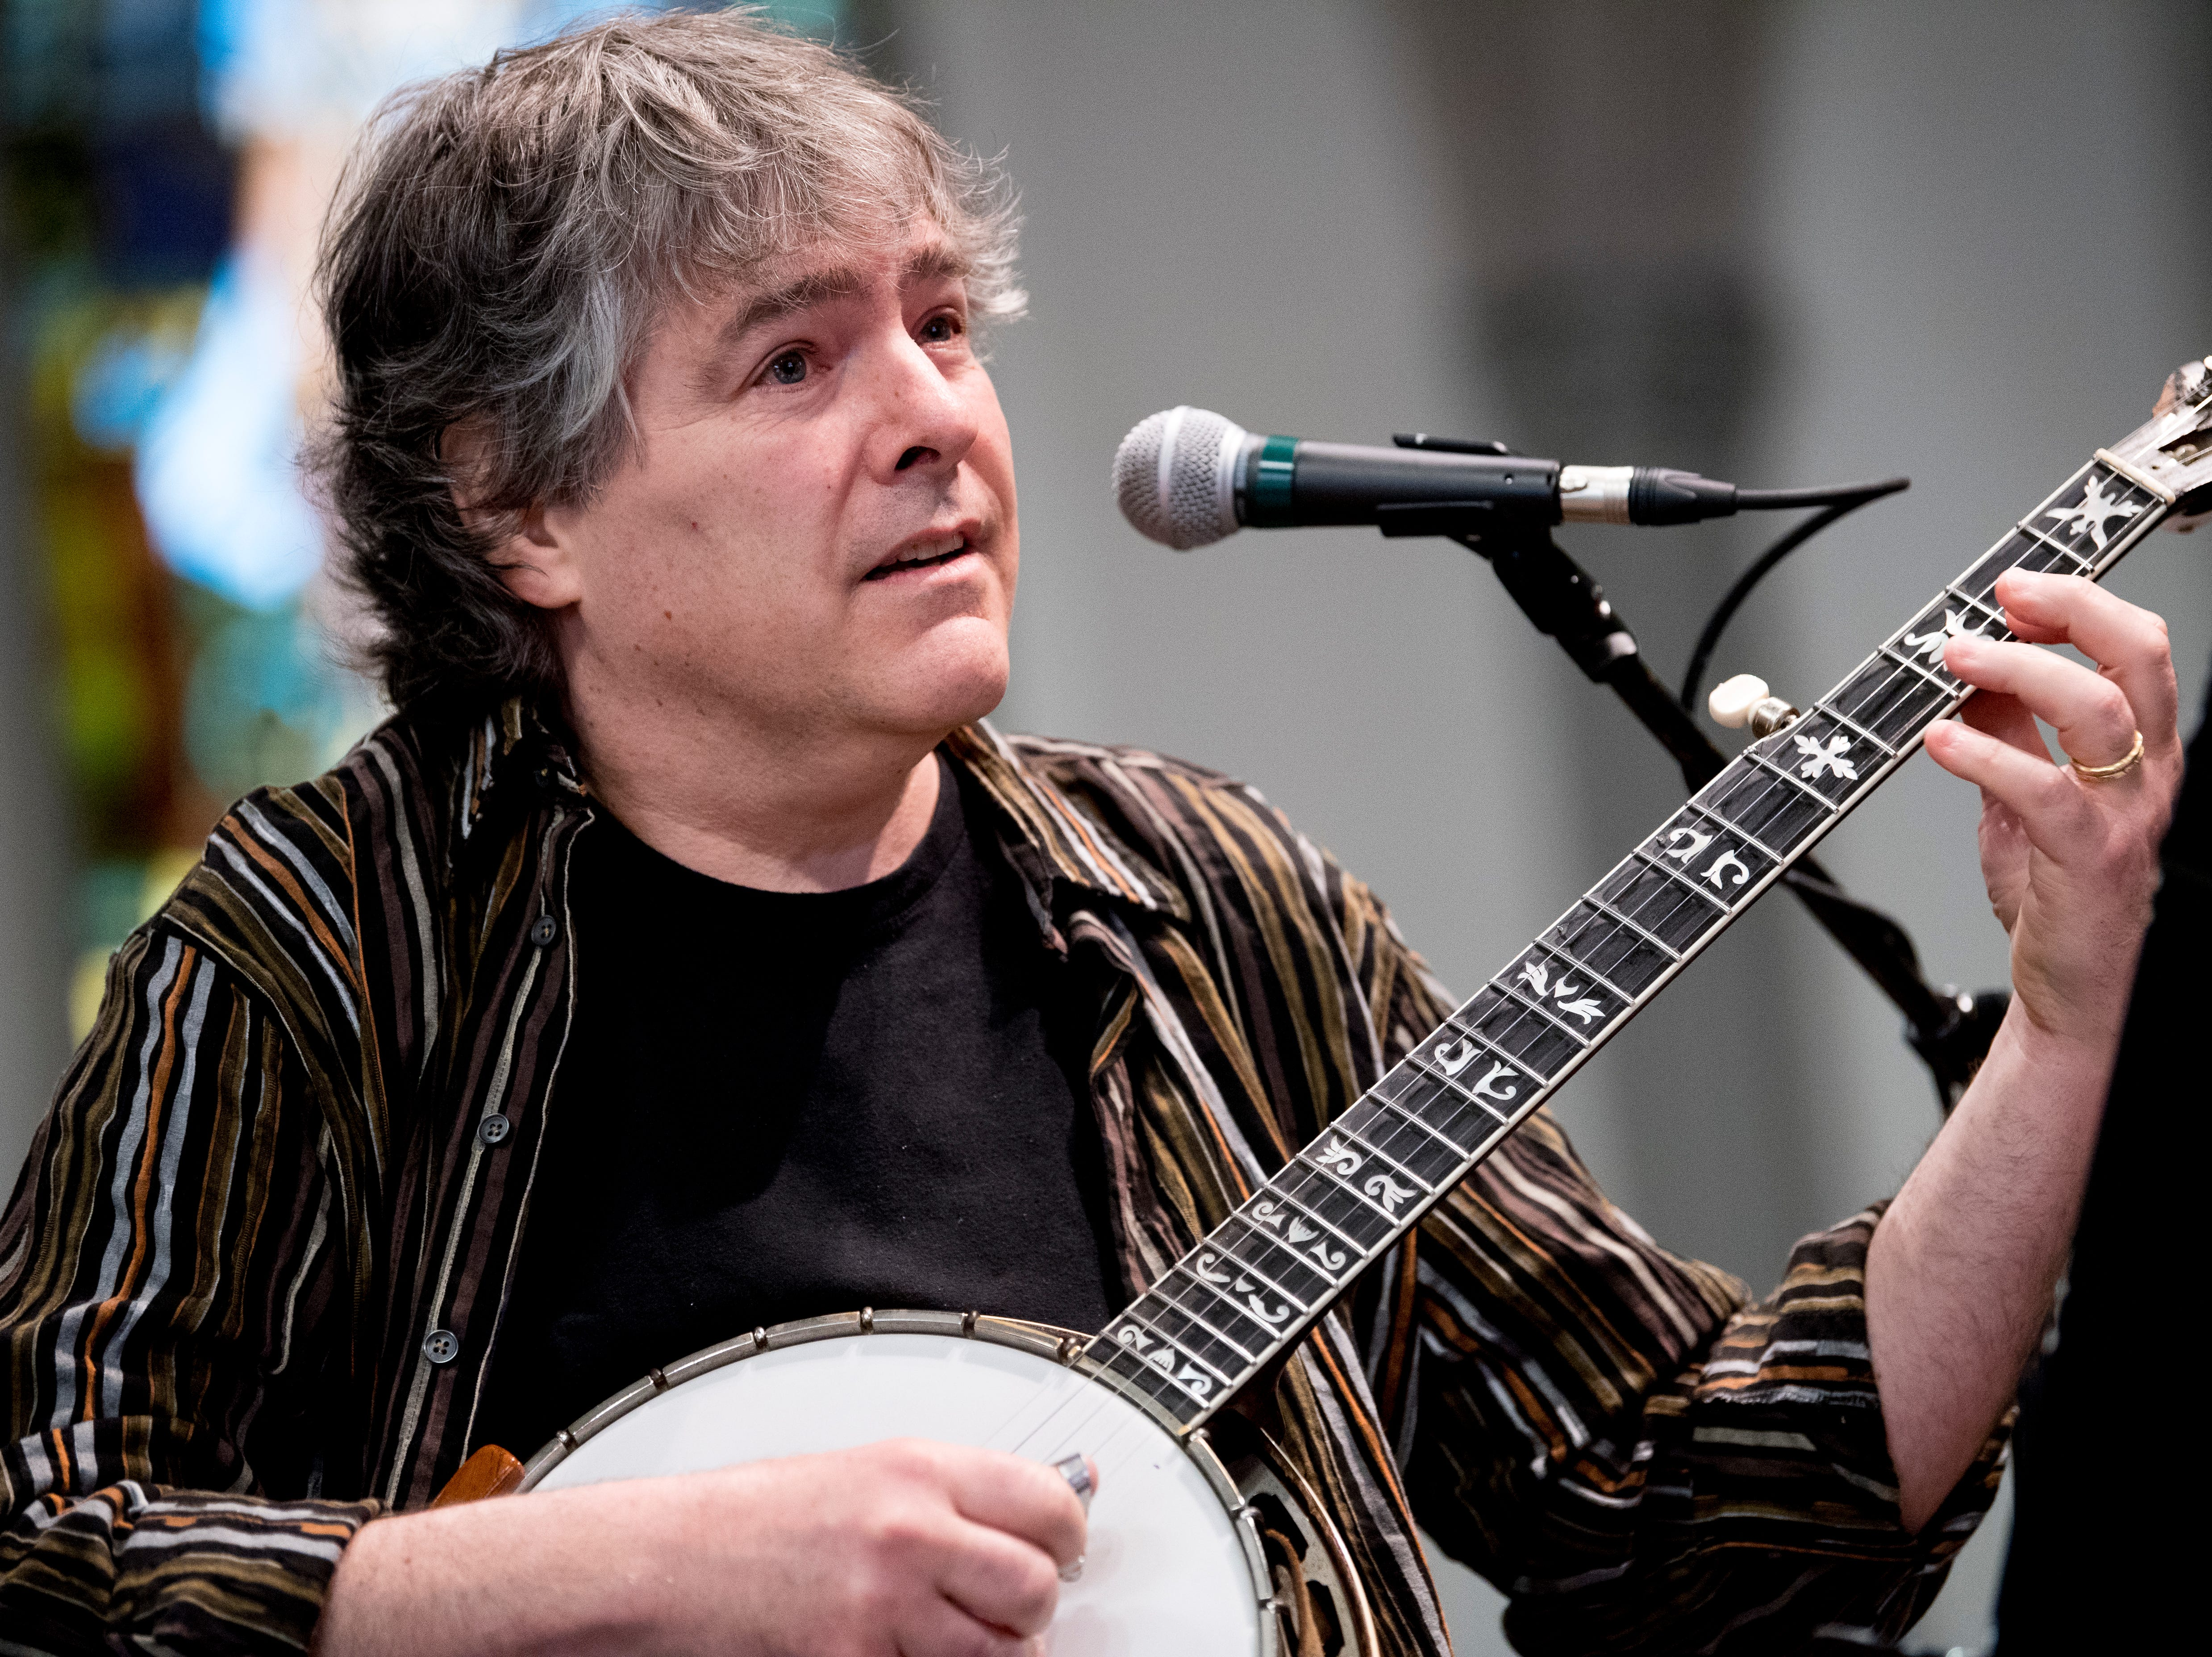 Bela Fleck & Edmar Castaneda perform at St. John's Episcopal Church during Big Ears Festival 2019 in Knoxville, Tennessee on Friday, March 22, 2019.